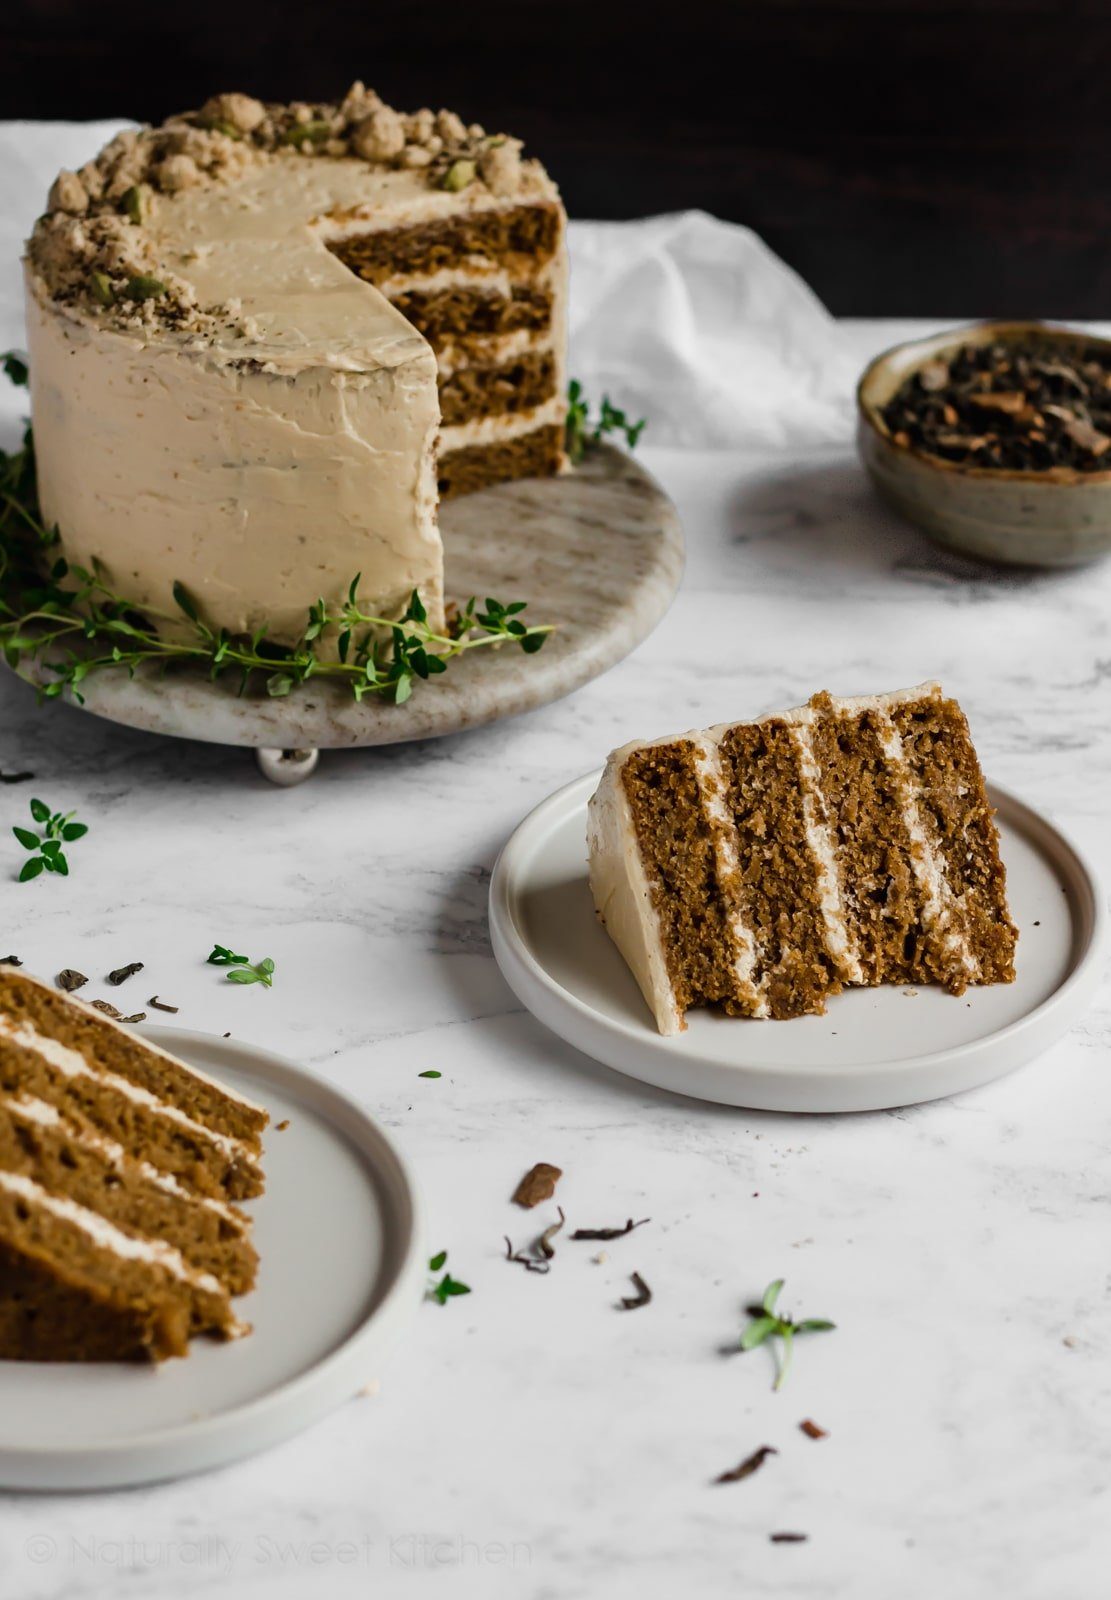 This Apple Chai Cake with refined sugar free Swiss Meringue Maple Frosting is filled with tart apples, heady, warming chai tea spices, and is incredibly moist. Get the recipe and more refined sugar free cakes at naturallysweetkitchen.com #cakerecipe #chaicake #chaitea #applecake #maplefrosting #refinedsugarfree